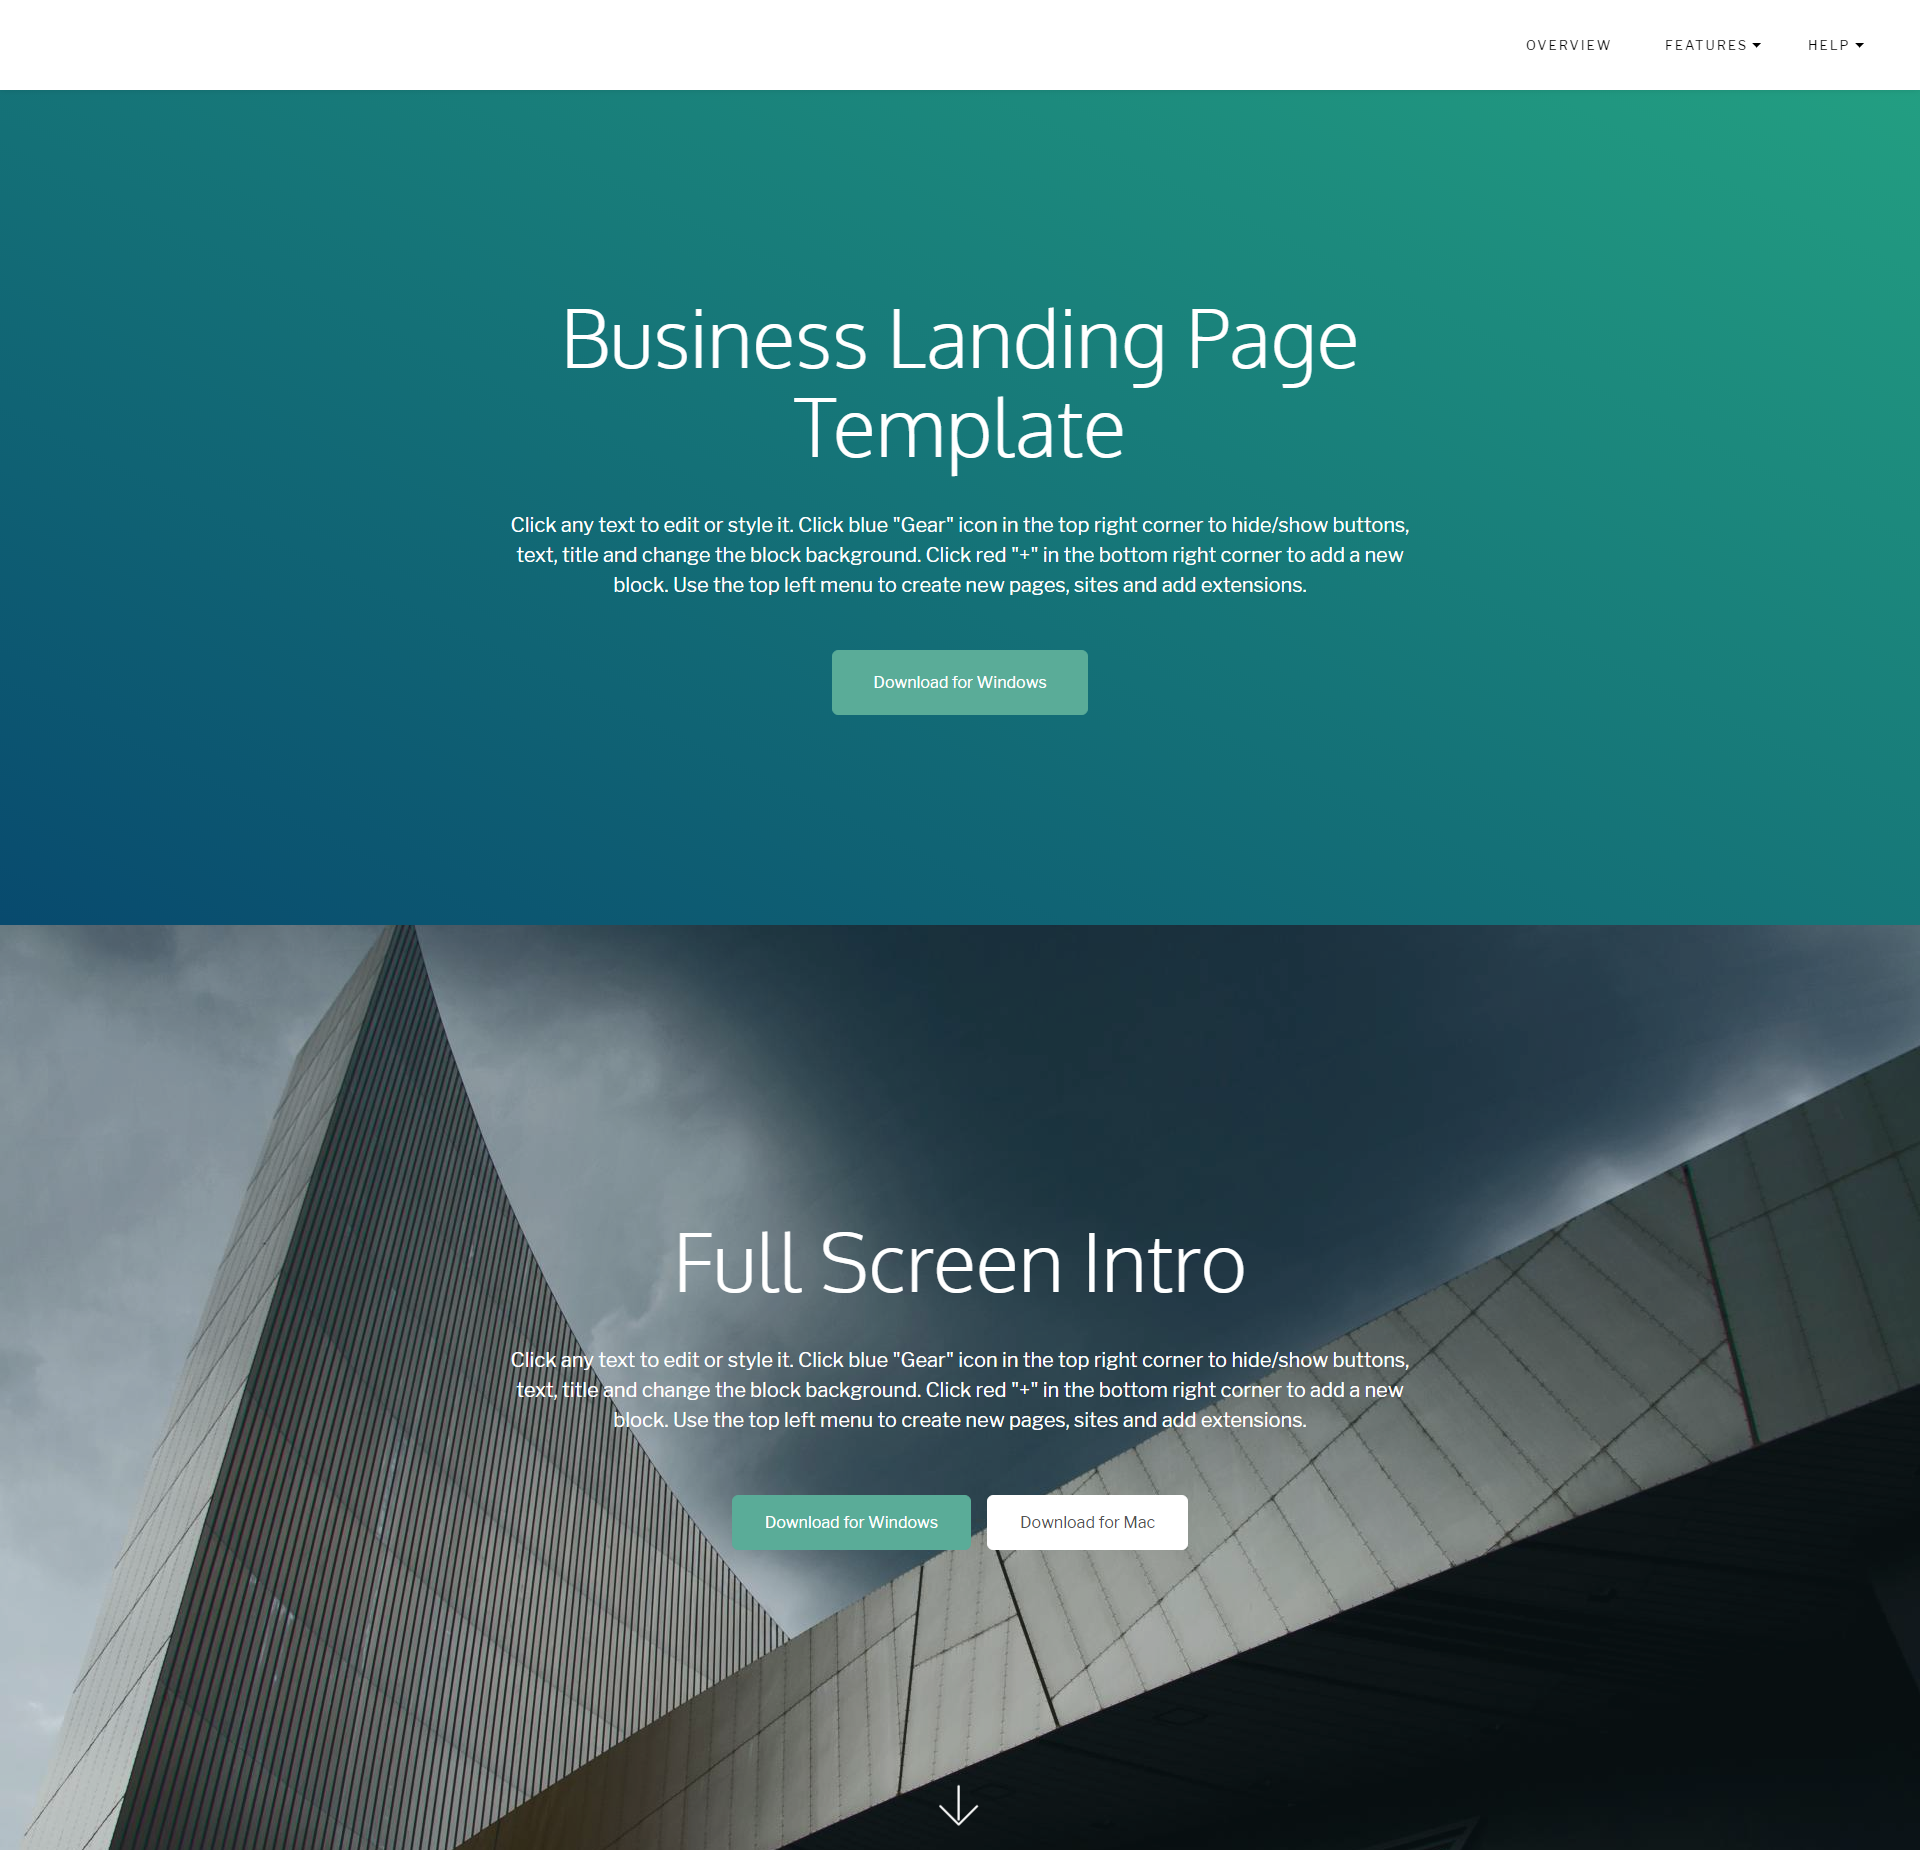 HTML5 Bootstrap Business Landing Page Templates